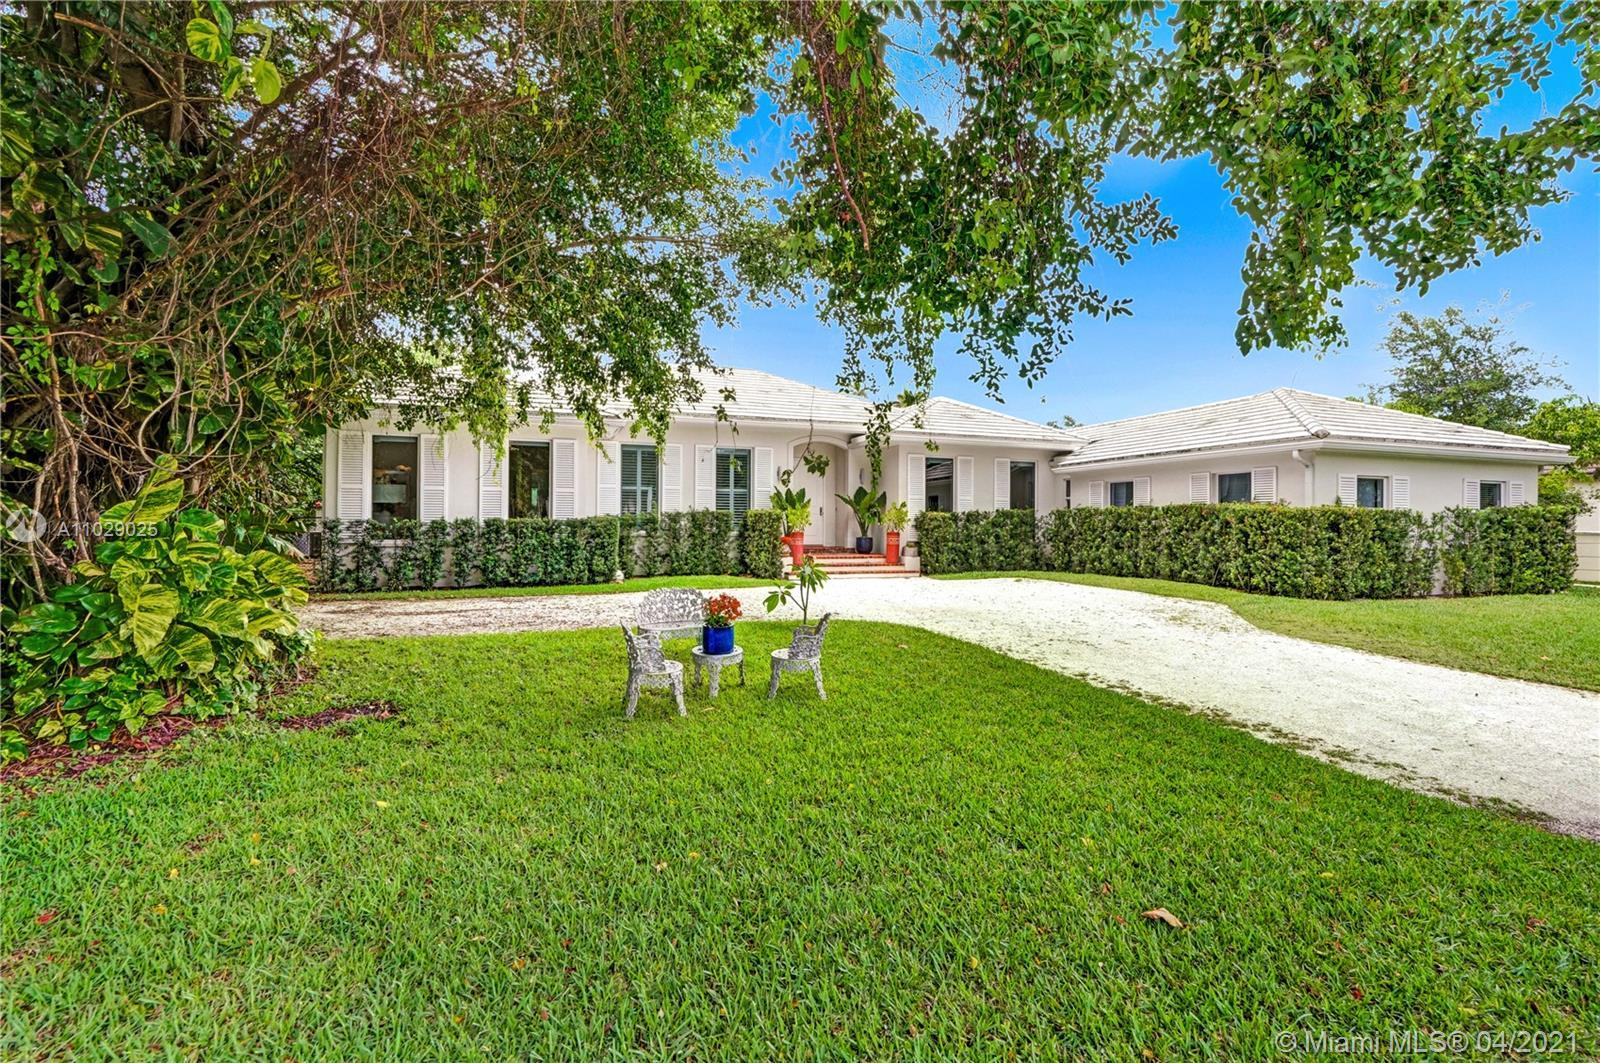 Introducing this bright and open residence in the heart of Miami's famous Design District. Nestled i